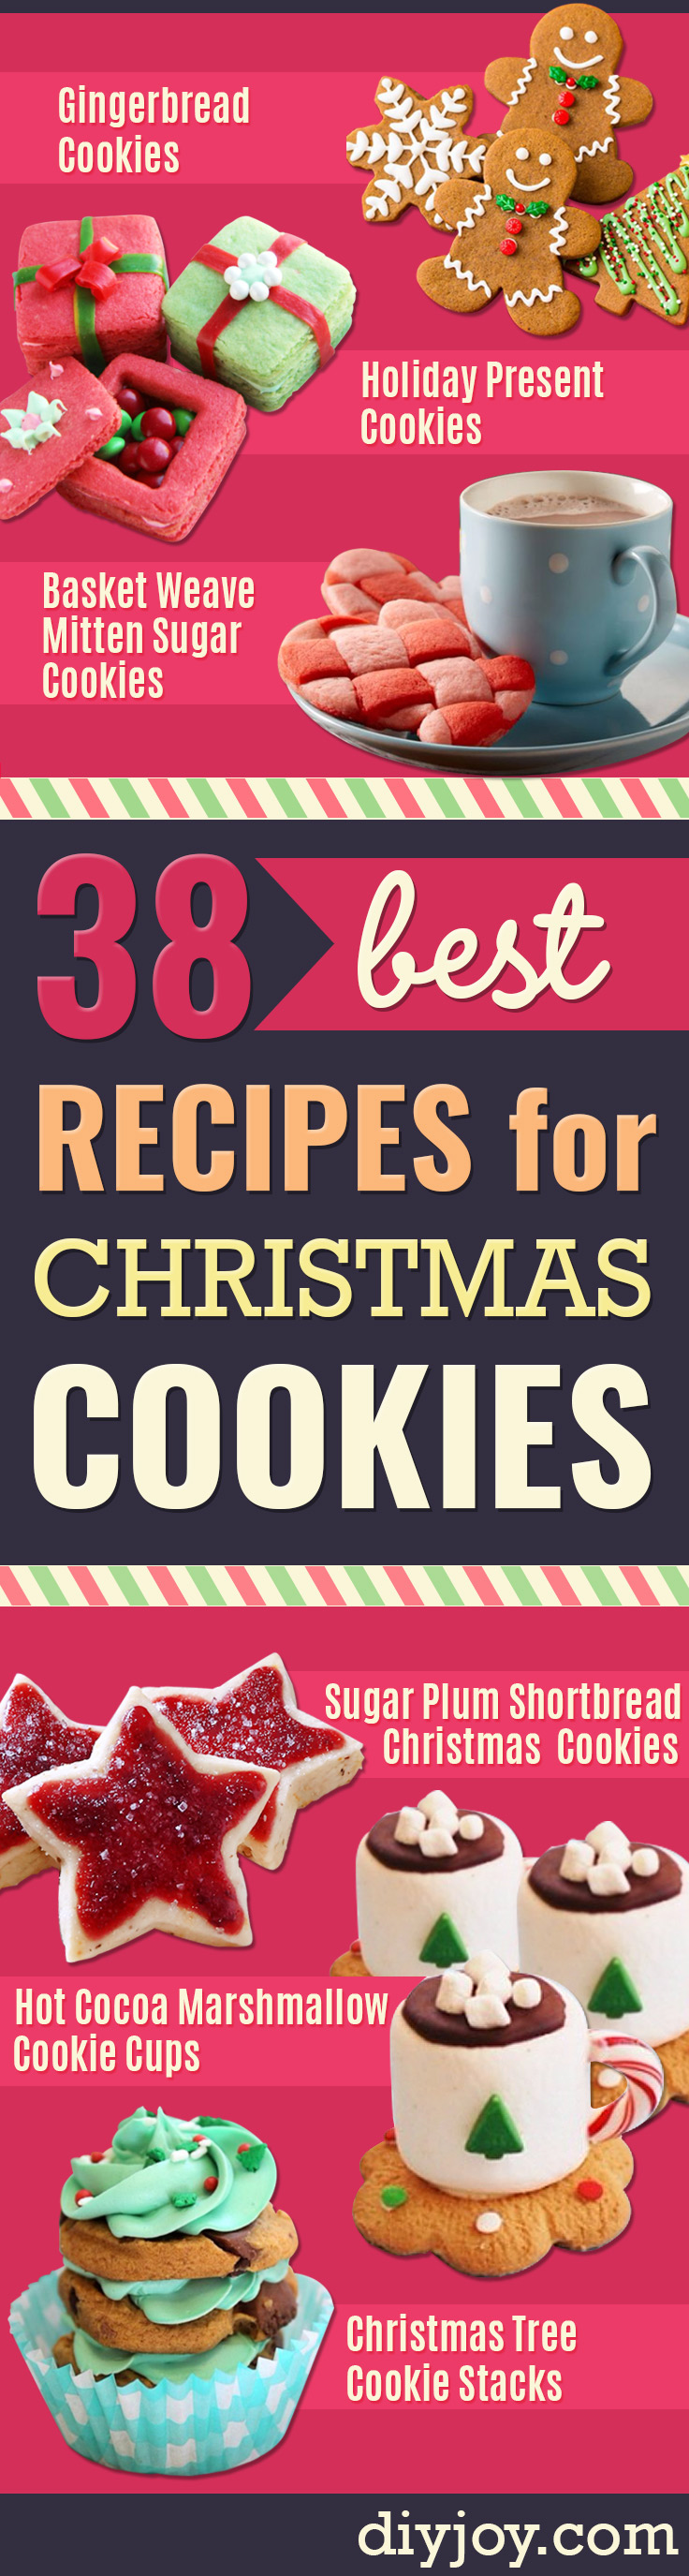 Best Recipes for Christmas Cookies - Easy Decorated Holiday Cookies - Candy Cookie Recipes Ideas for Kids - Traditional Favorites and Gluten Free and Healthy Versions - Quick No Bake Cookies and Last Minute Desserts for the Holidays http://diyjoy.com/best-christmas-cookie-recipes